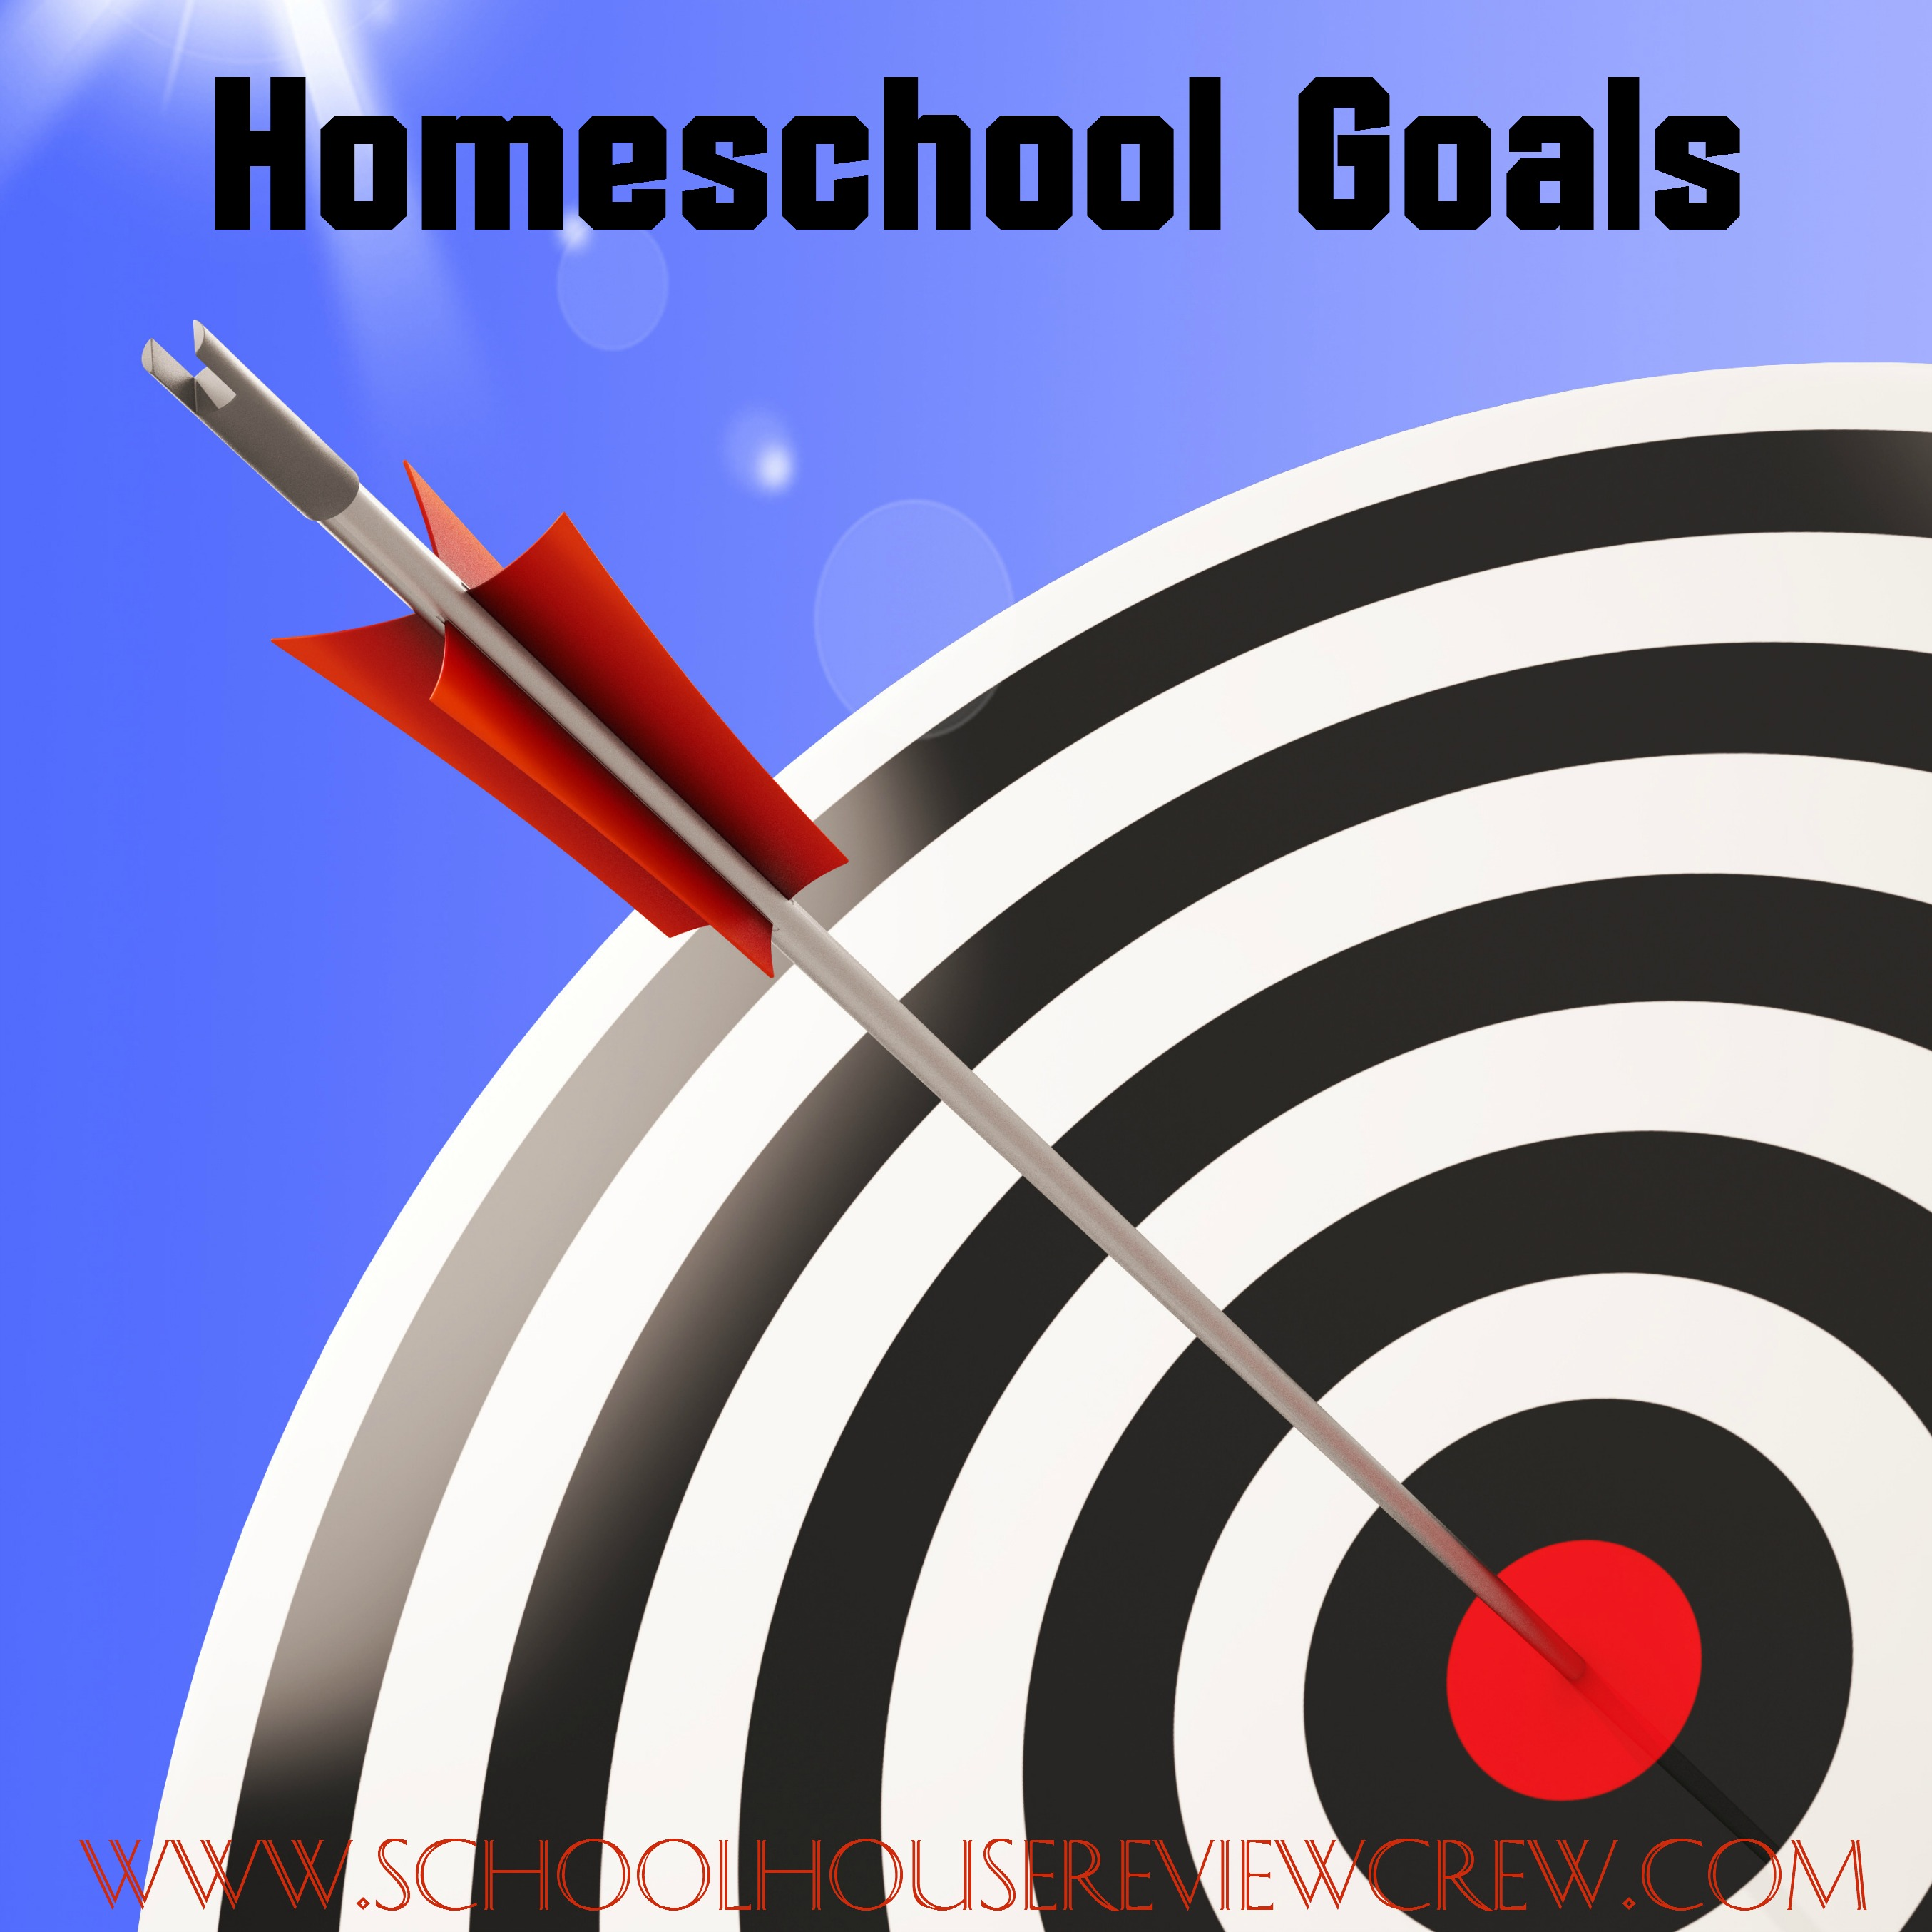 Blog Cruise ~ Homeschool Goals